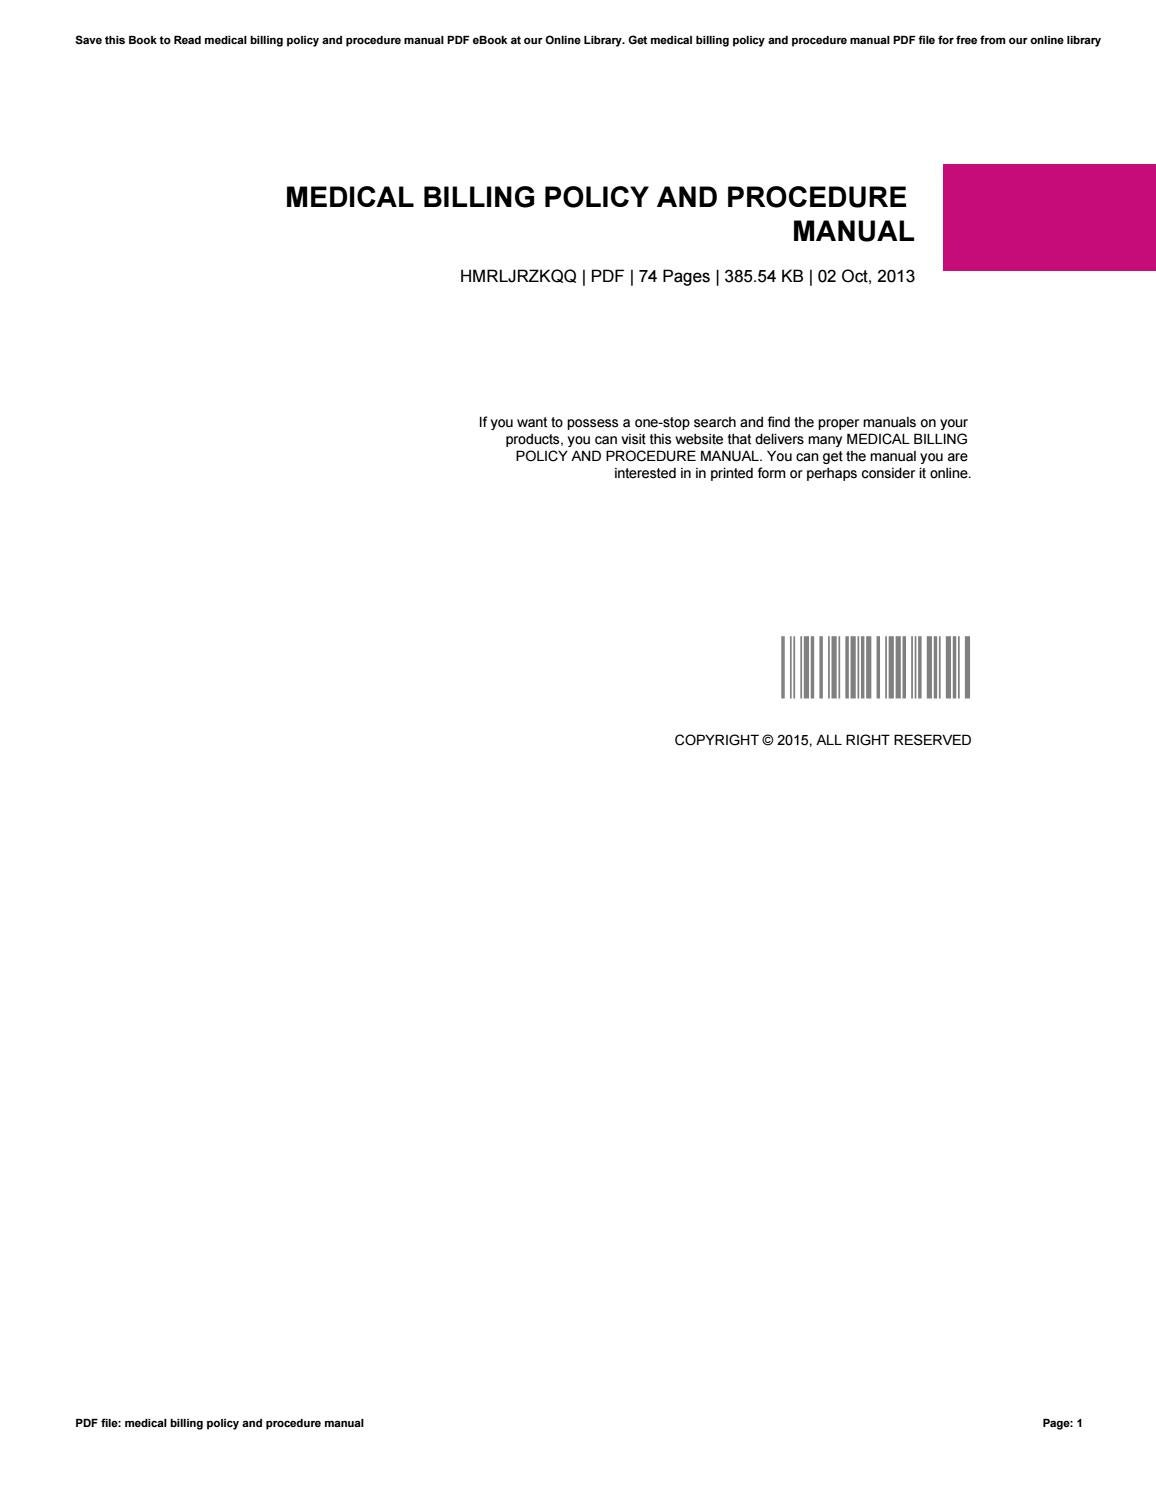 medical records policy and procedure manual